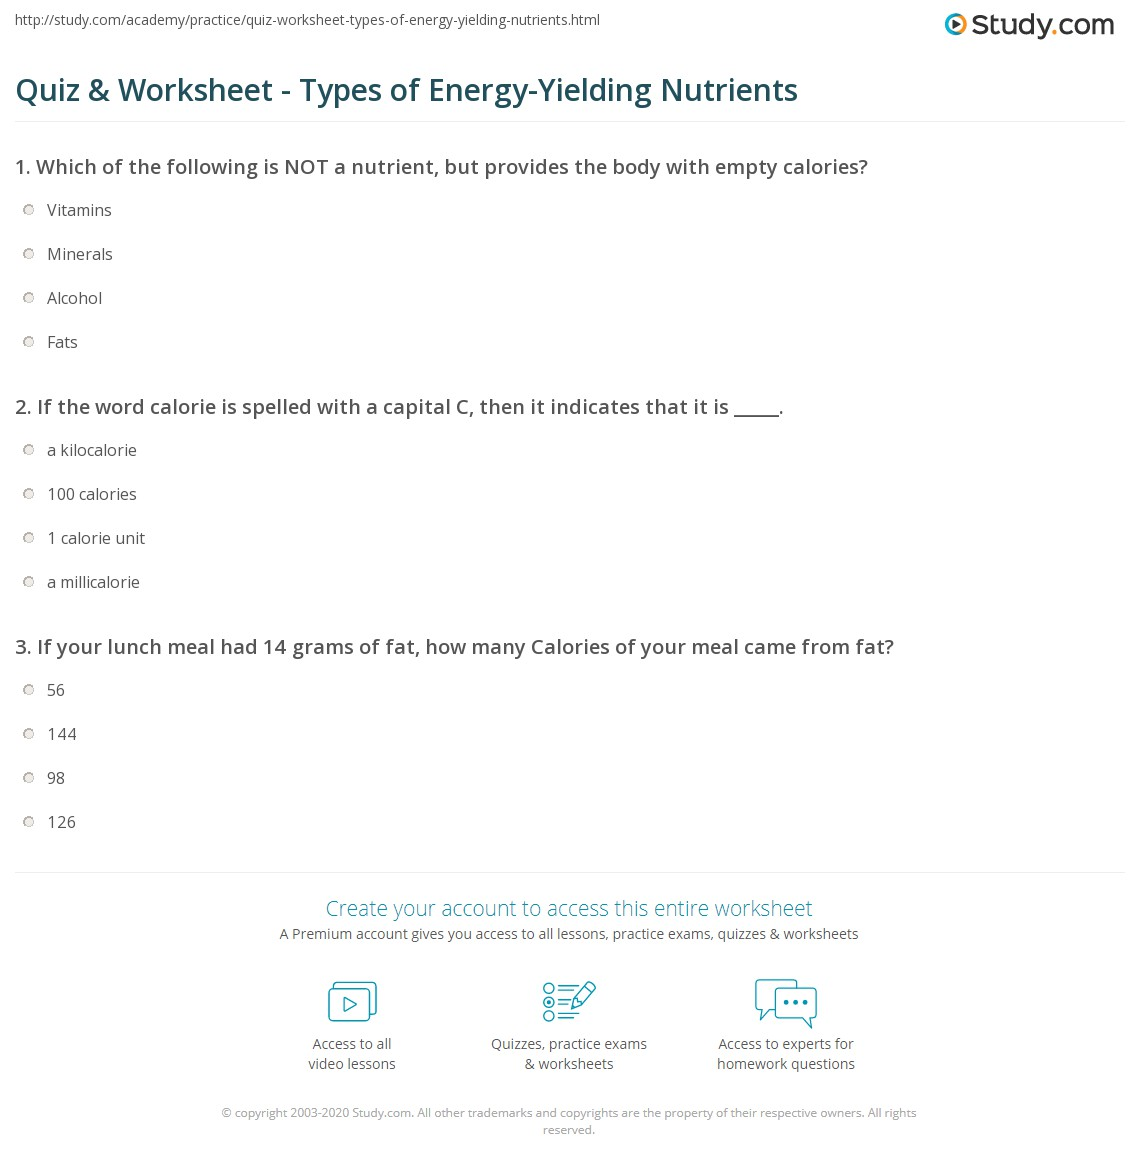 Quiz & Worksheet - Types of Energy-Yielding Nutrients | Study.com